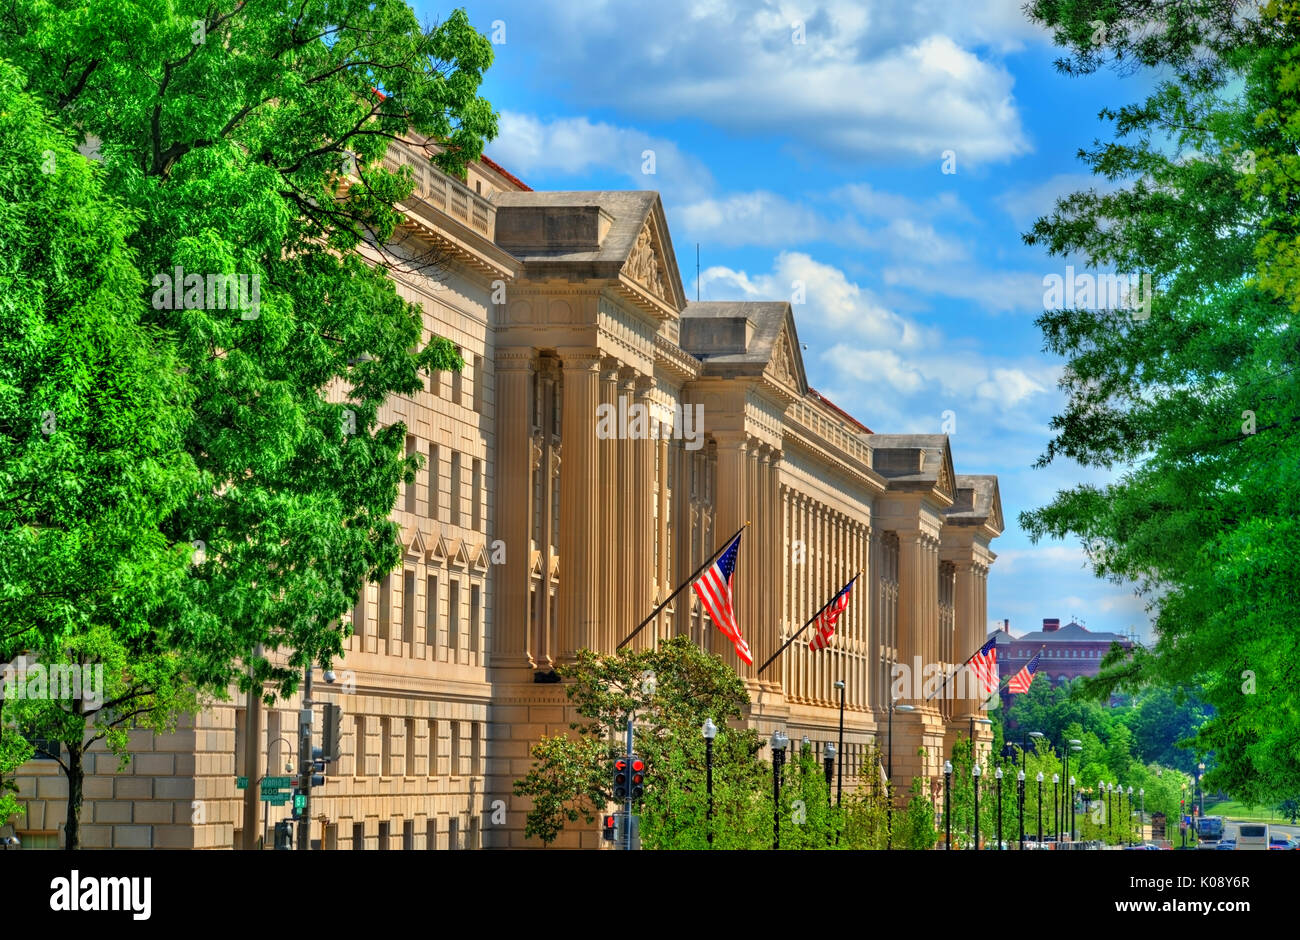 The United States Department of Commerce in Washington, D.C. - Stock Image